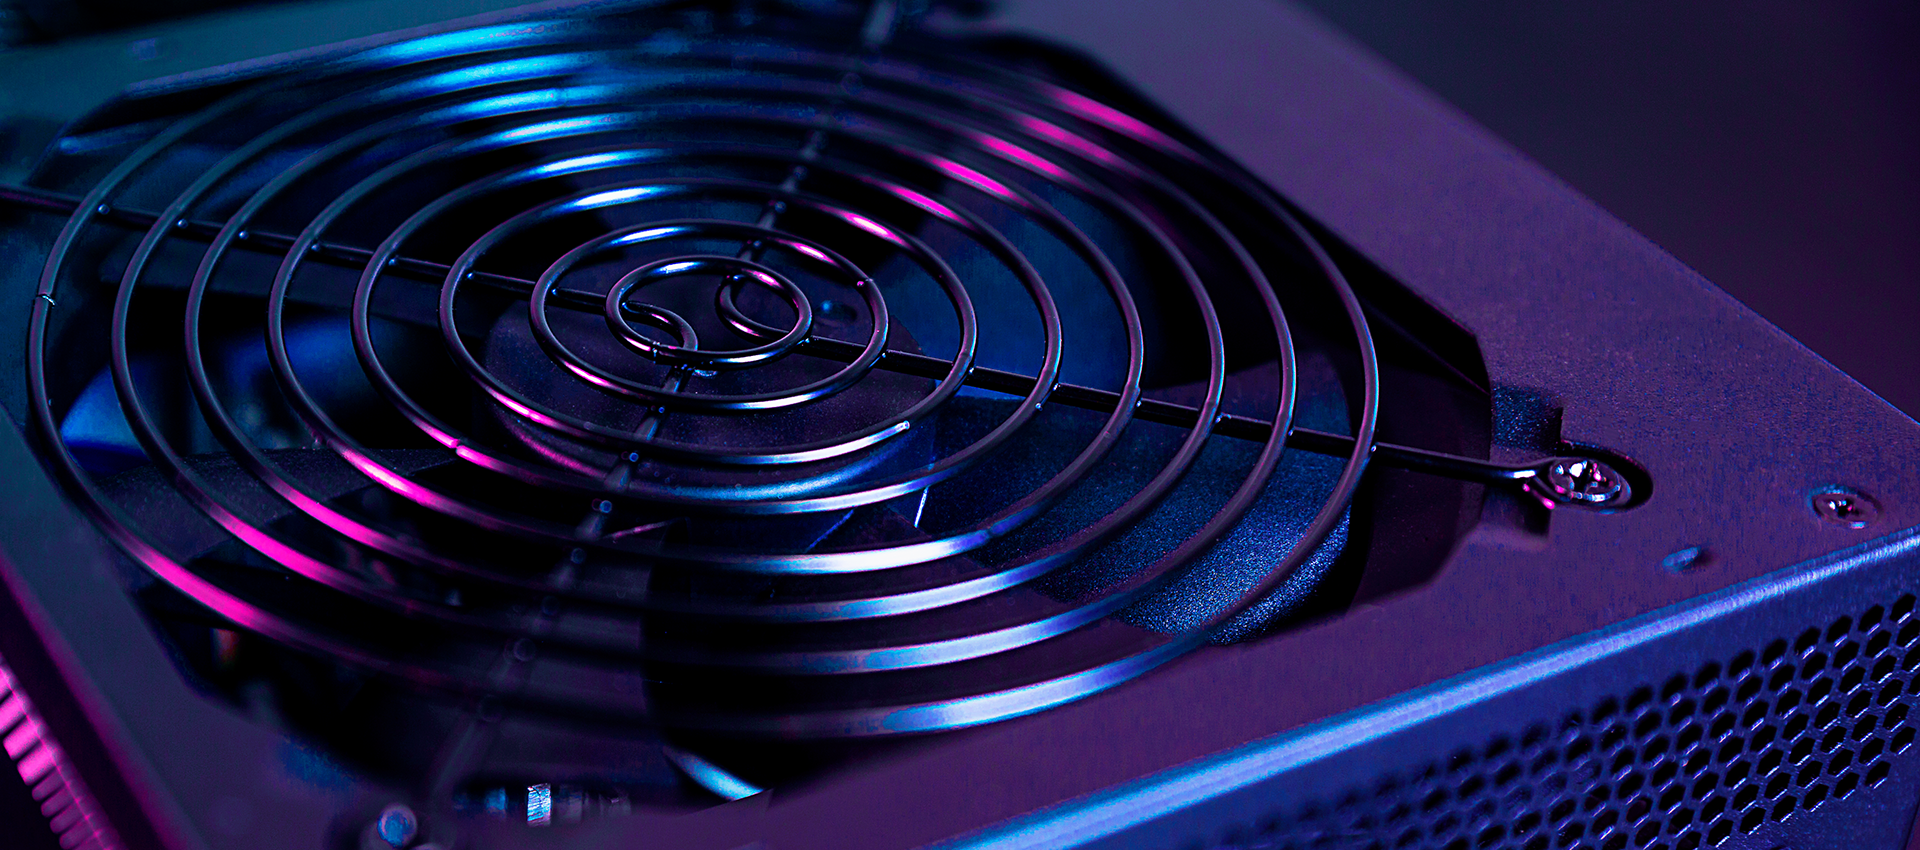 Close-up view of vent over fan